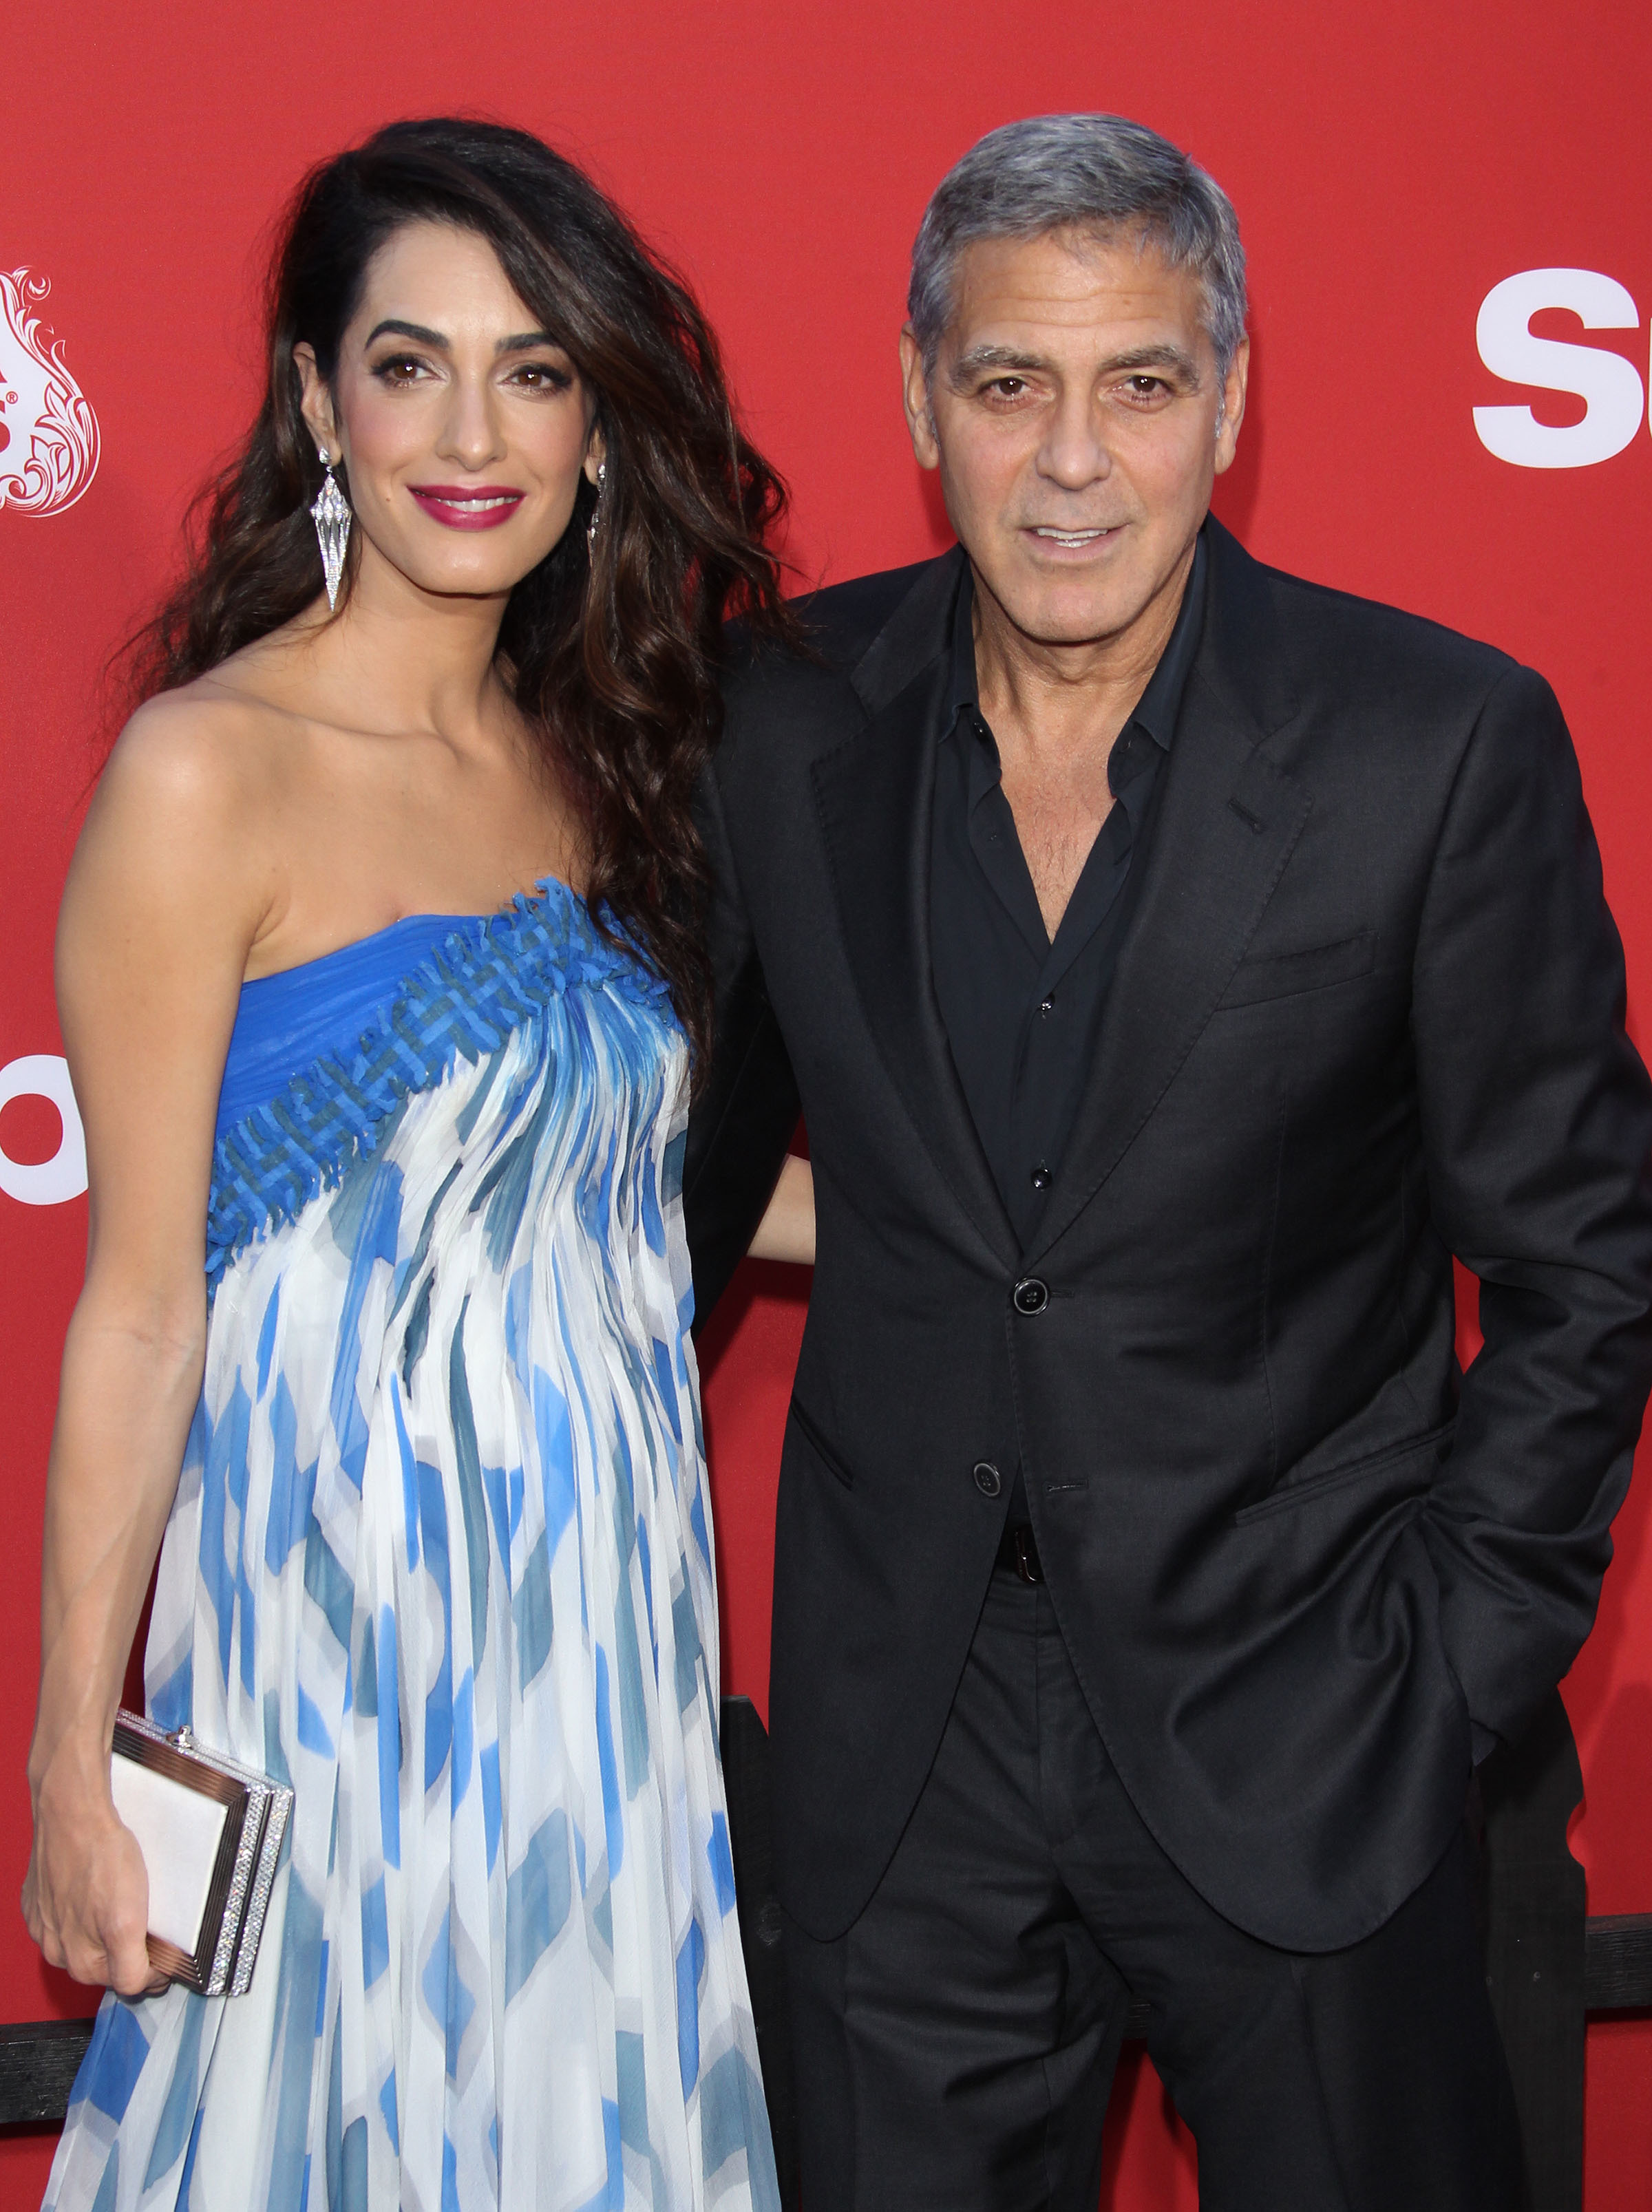 Amal Clooney and George Clooney attend the Suburbicon film premiere in Los Angeles on Oct. 22, 2017.